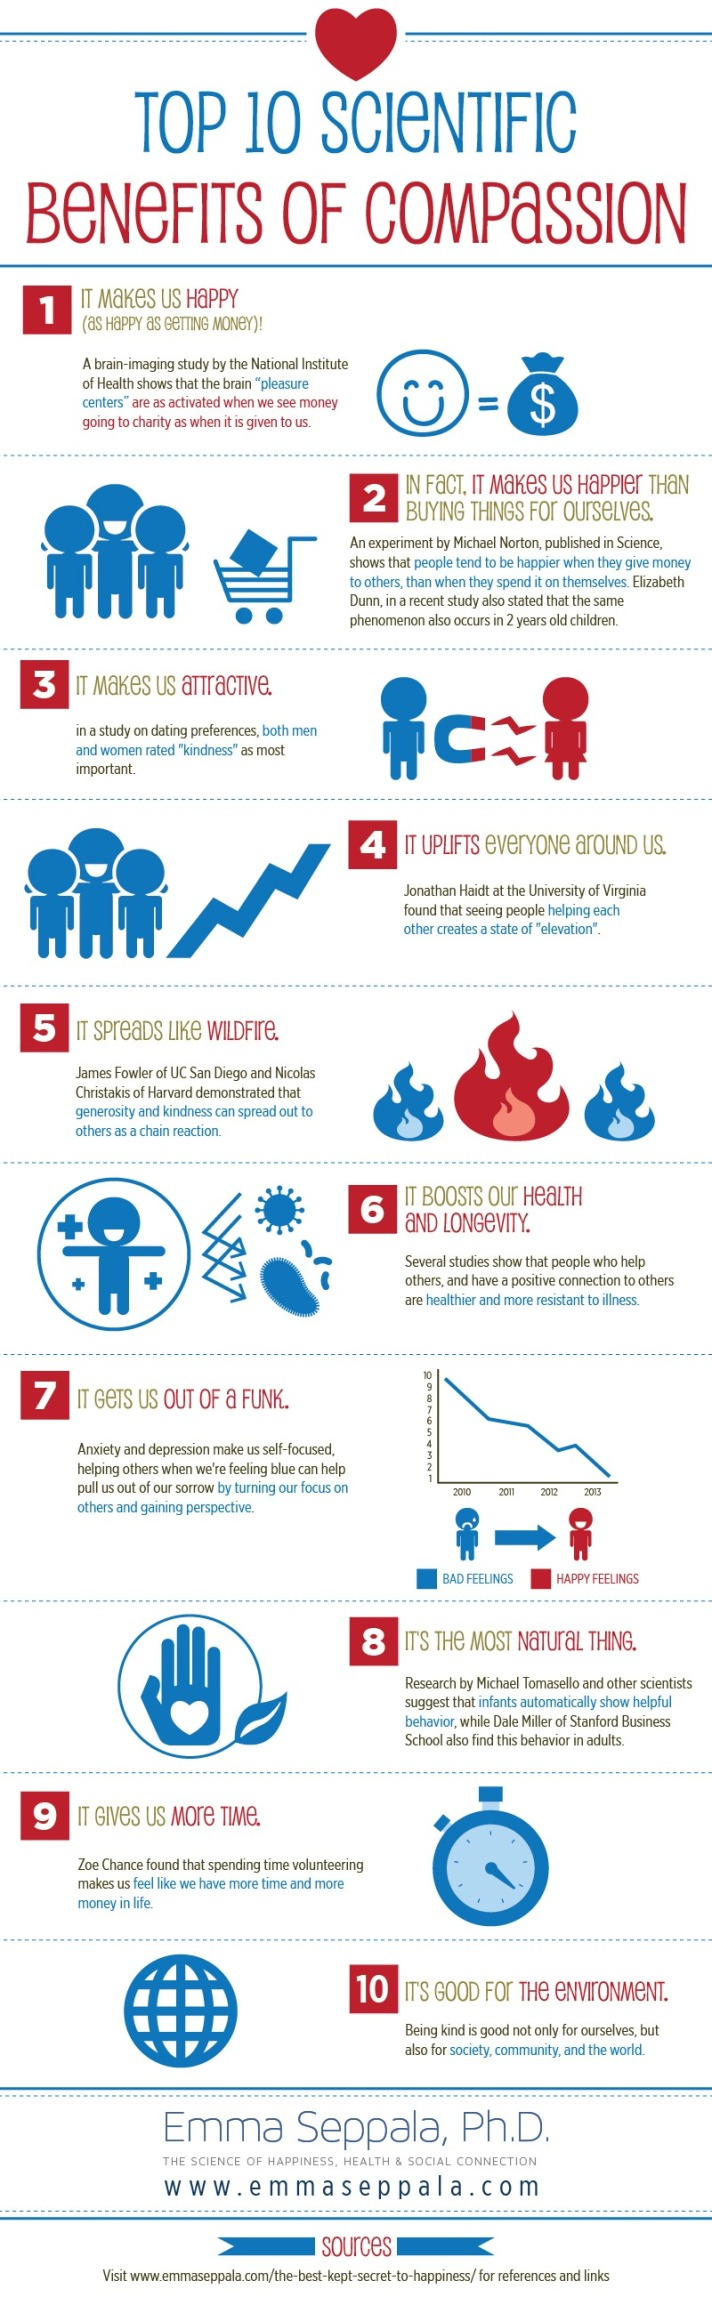 http://www.emmaseppala.com/top-10-scientific-benefits-of-compassion-infographic/#.WAALZfkrK6o